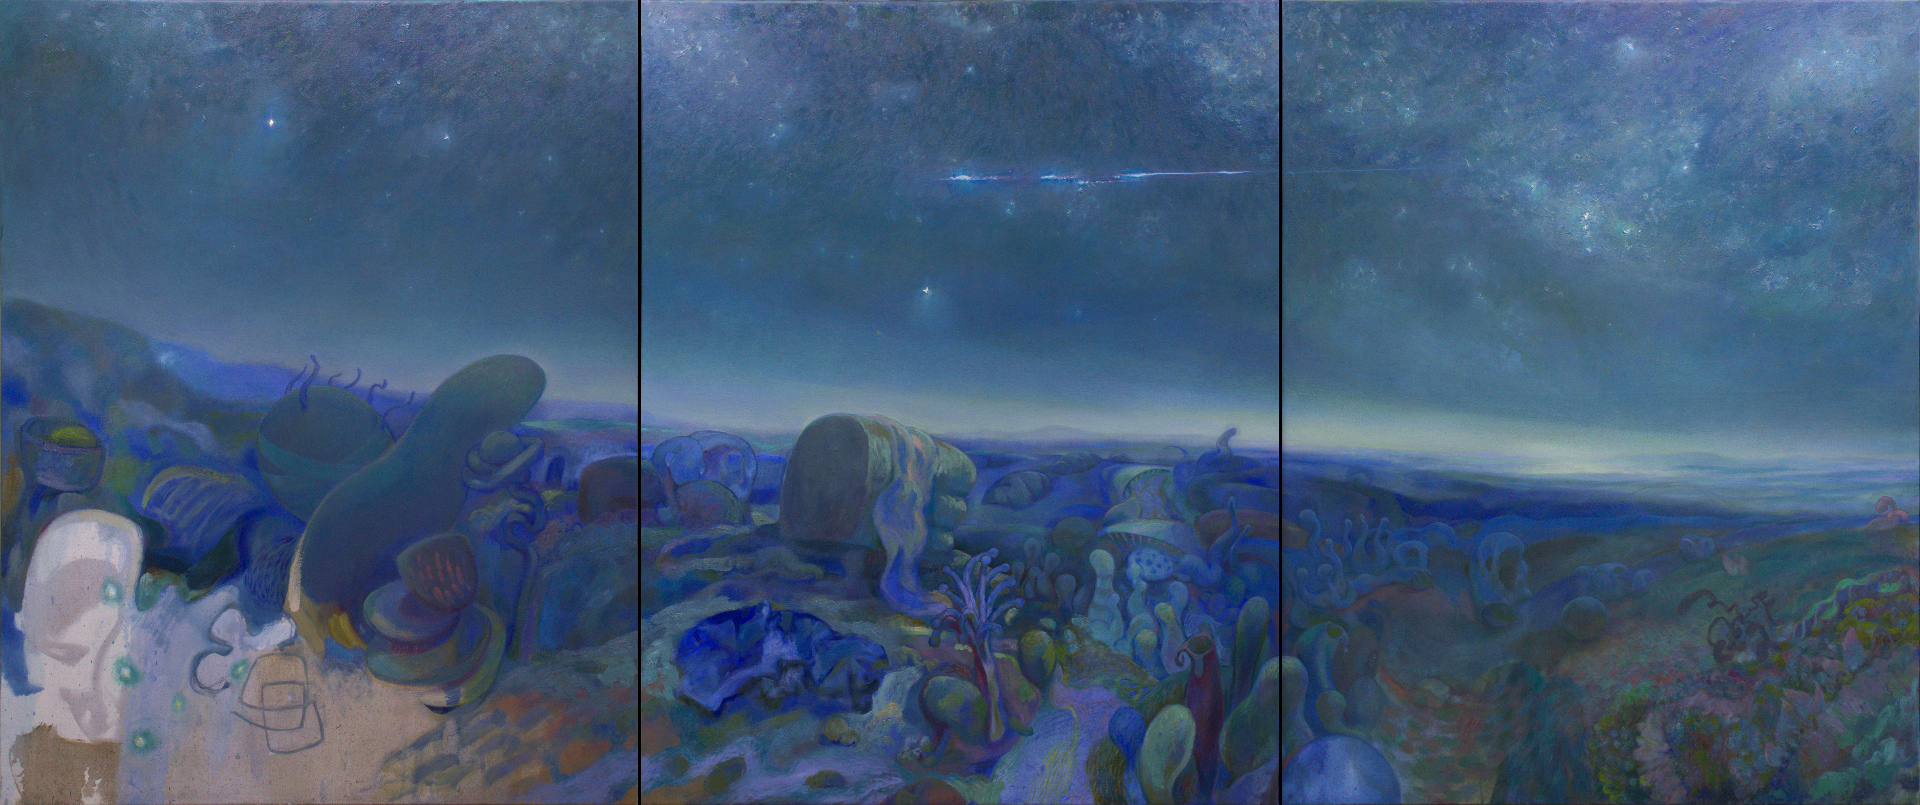 Small Worlds Triptych